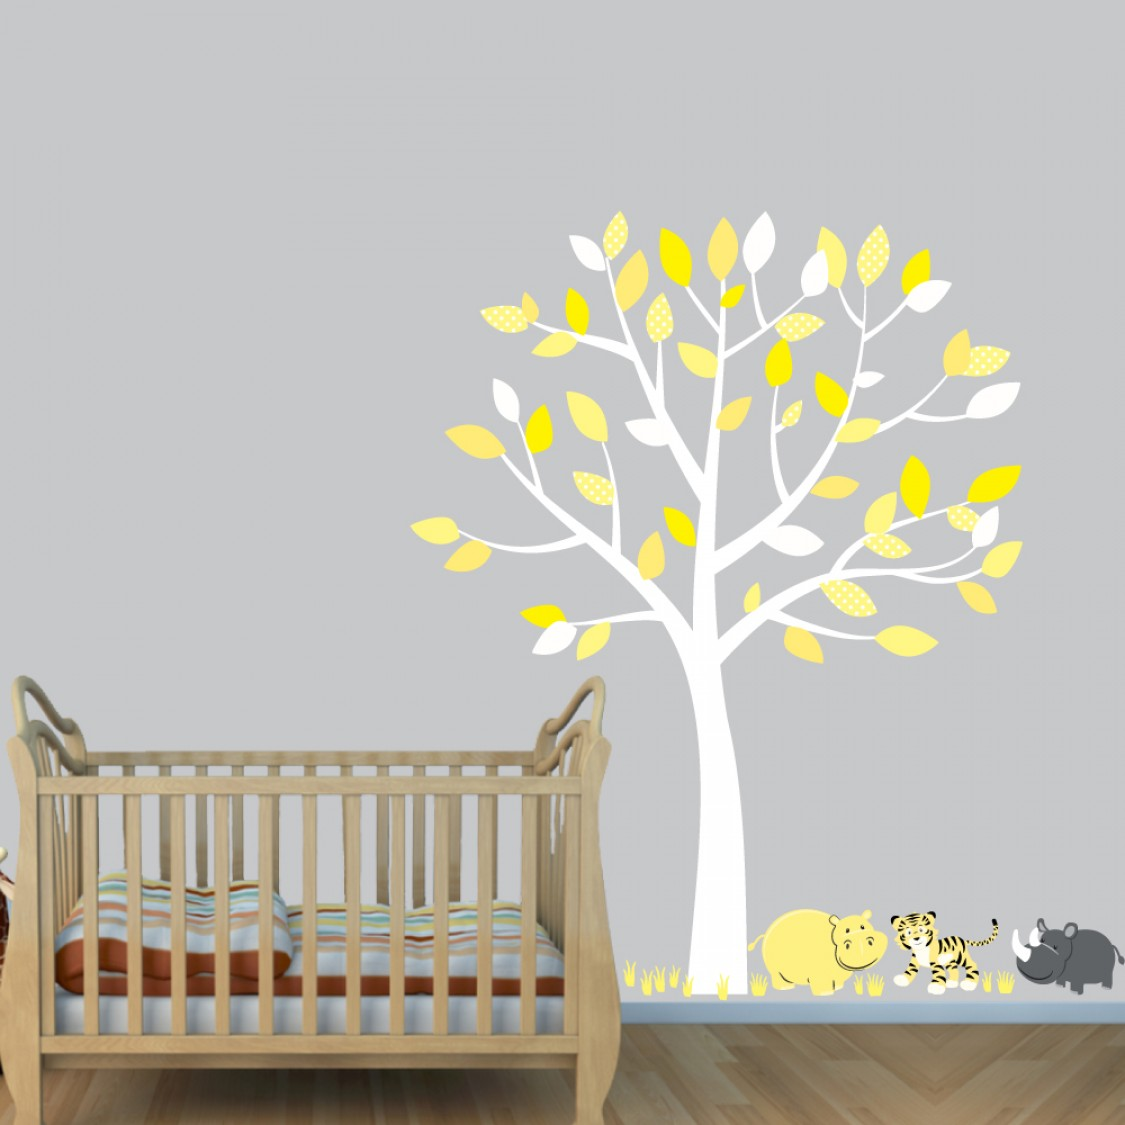 Yellow Jungle Stickers With Tiger Decals For Play Rooms